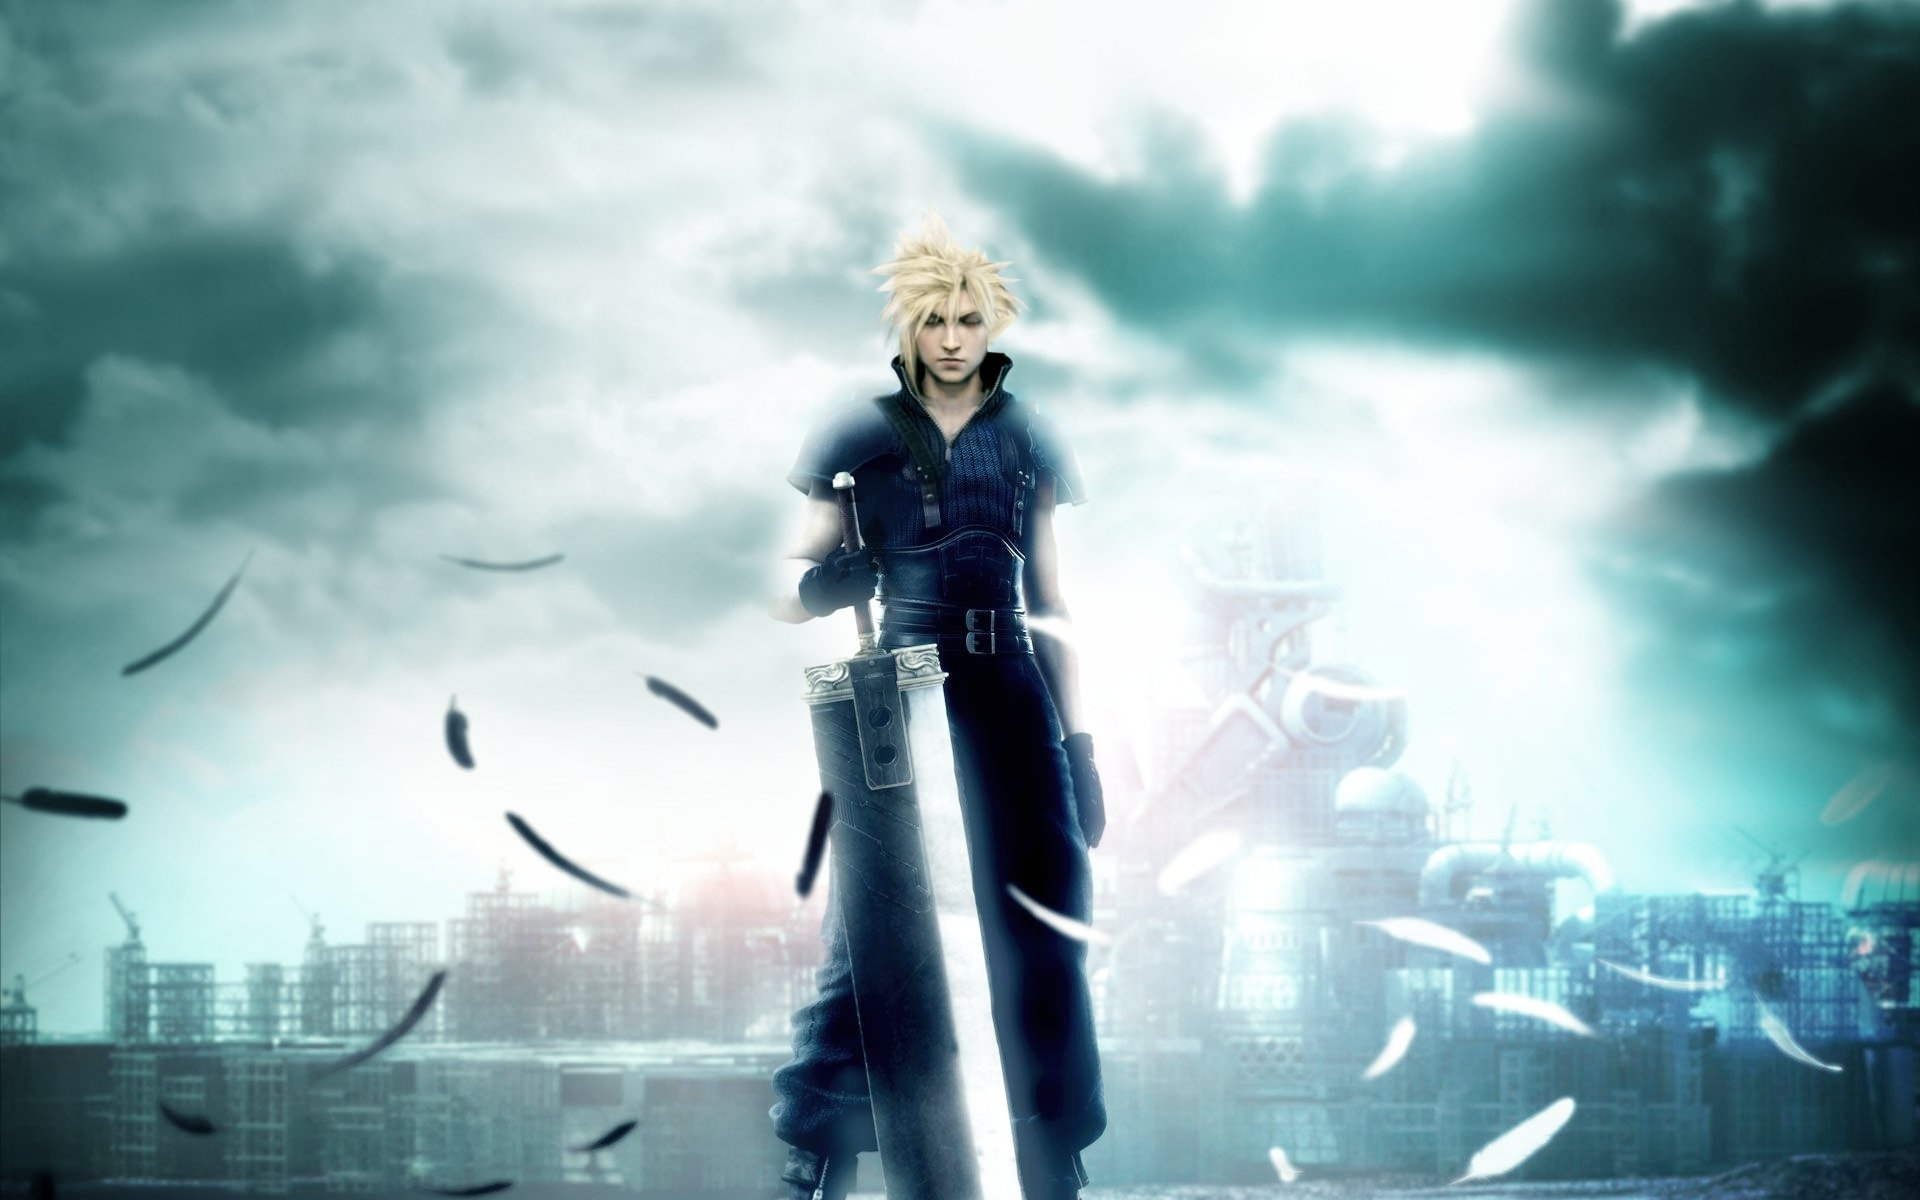 Final Fantasy VII: A Thought Experiment